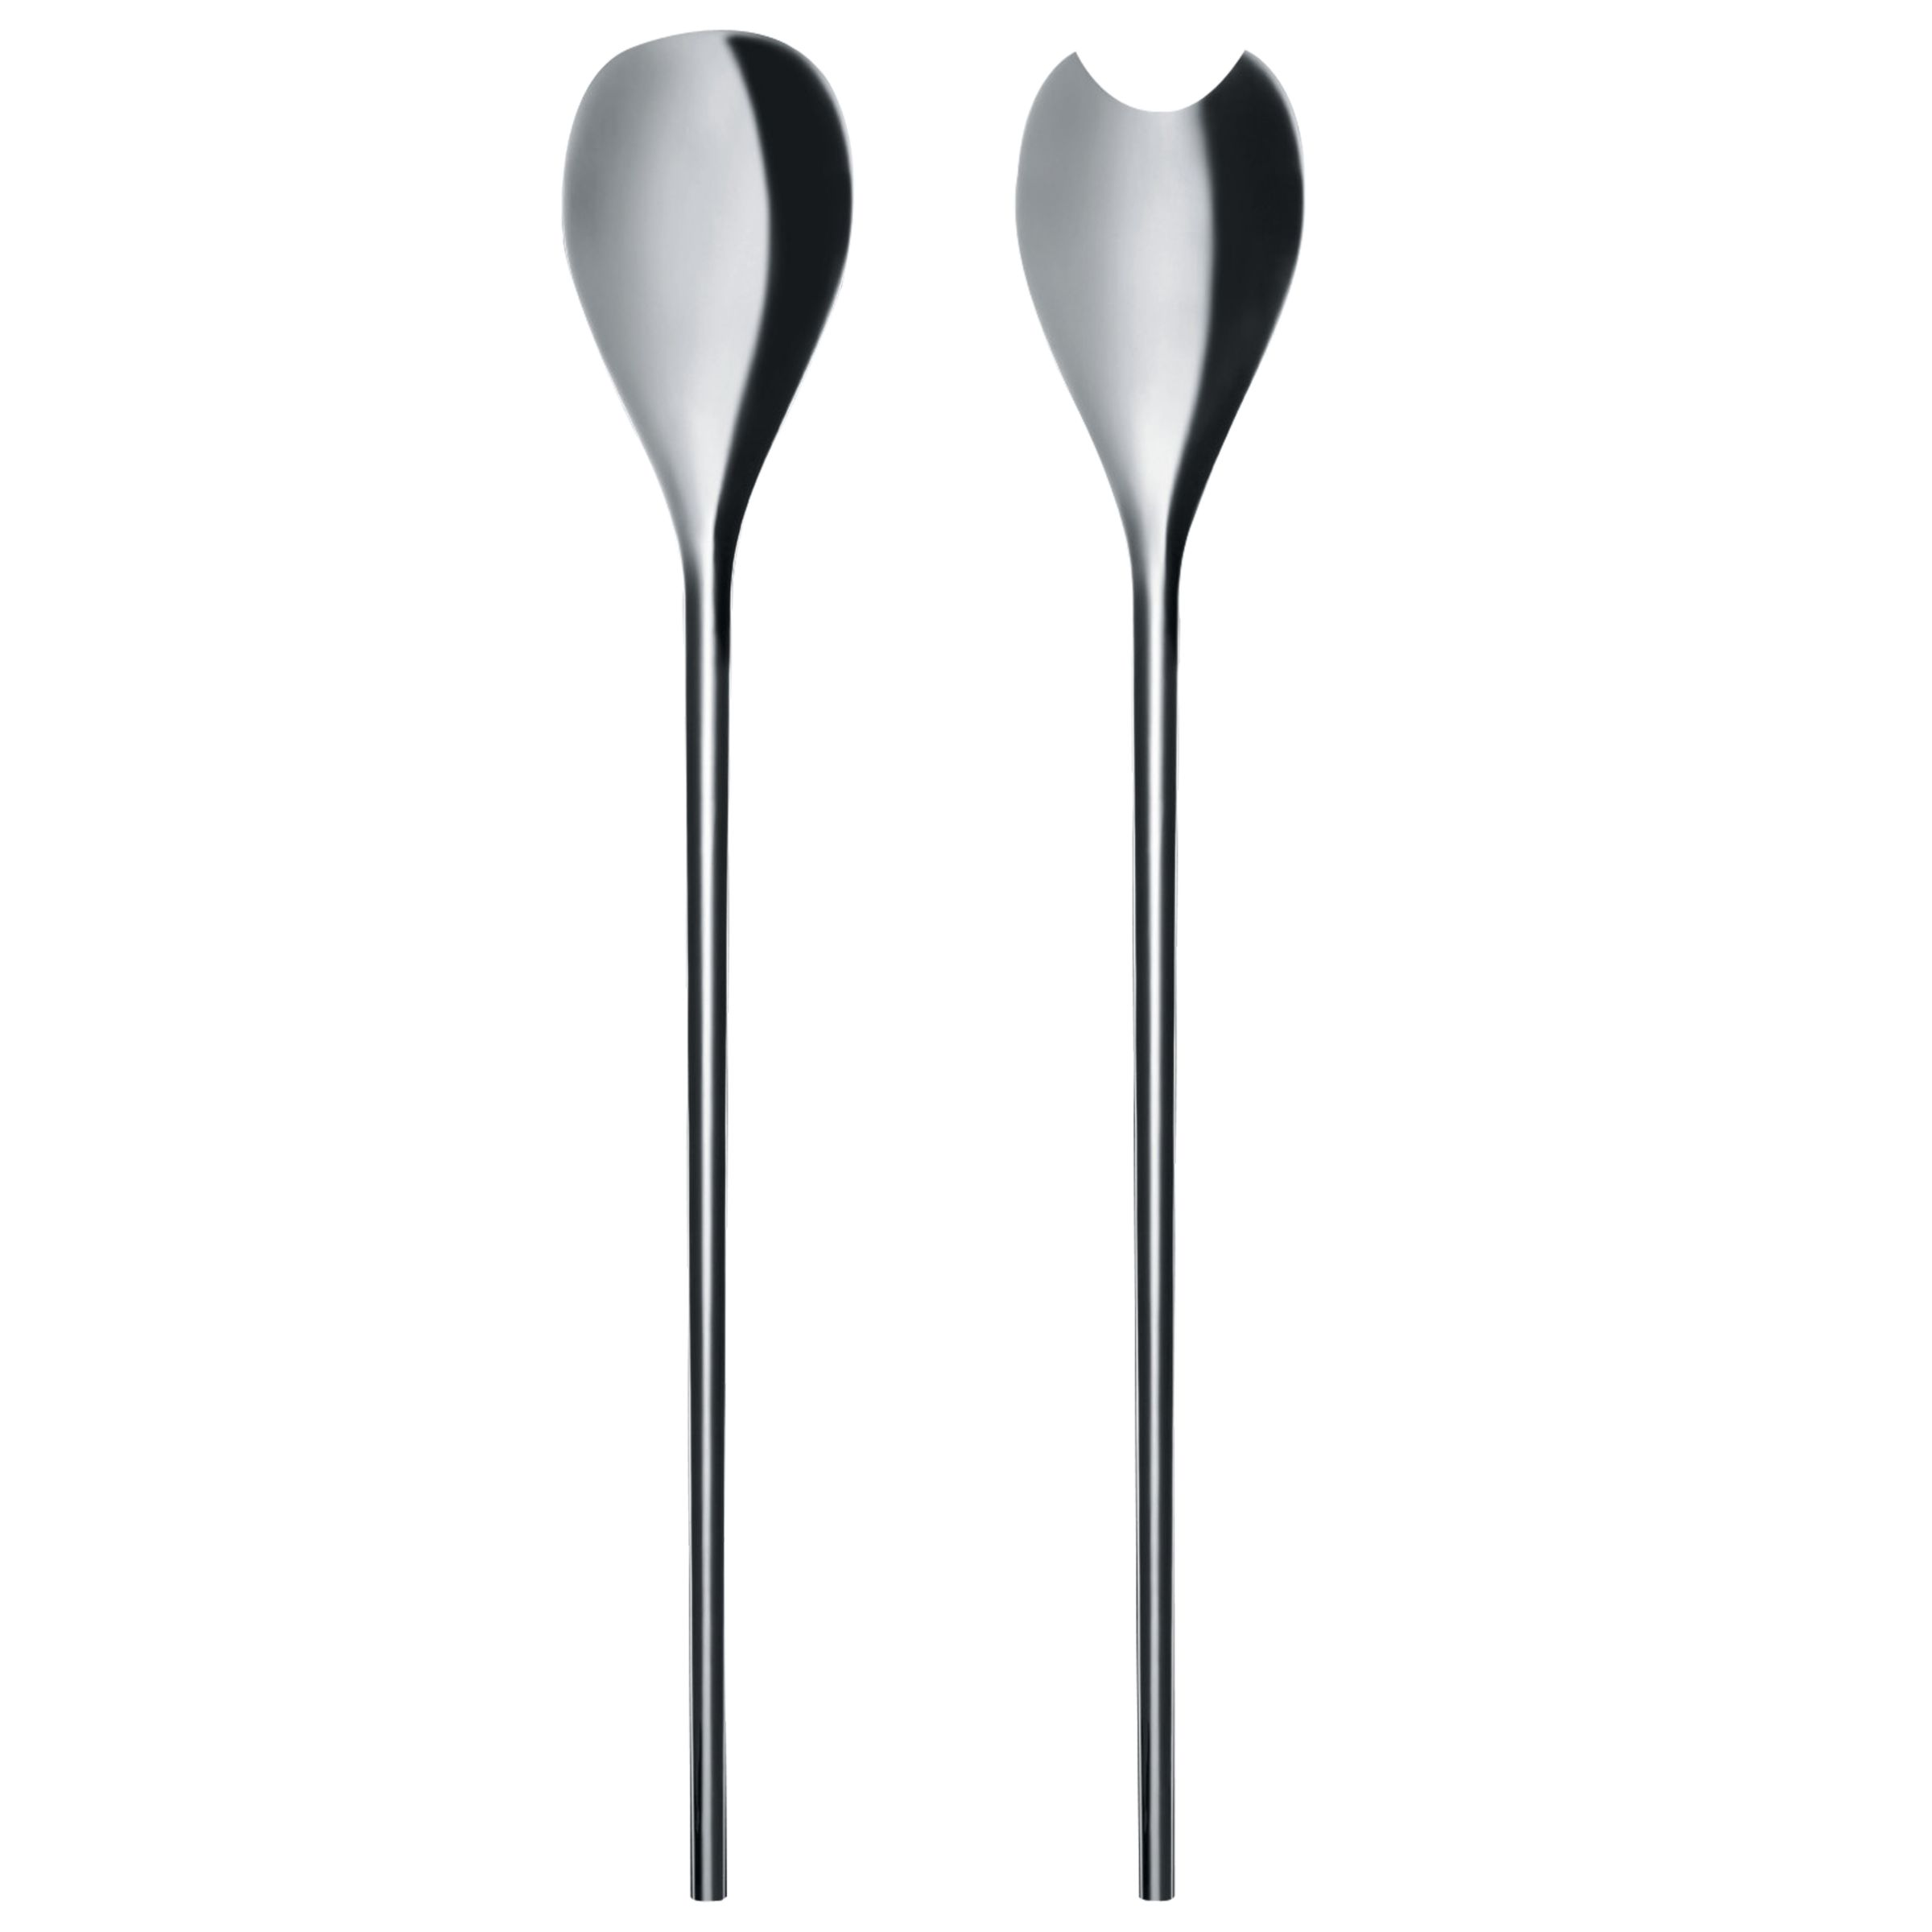 Alessi Alessi 'Human Collection' Salad Servers, 2 Piece